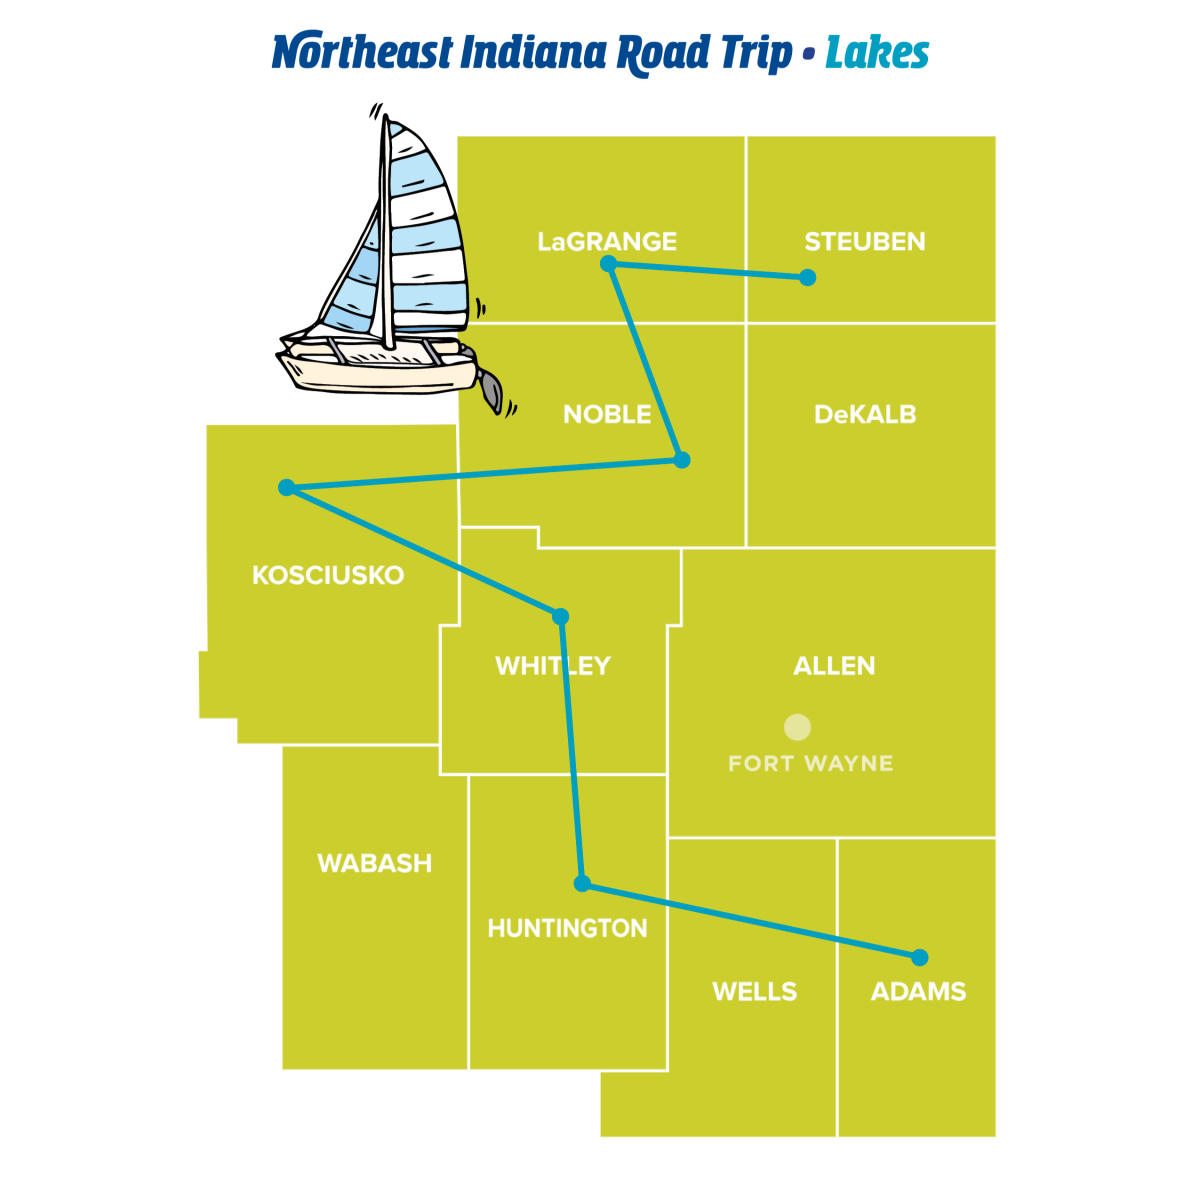 Lakes - Northeast Indiana Road Trips